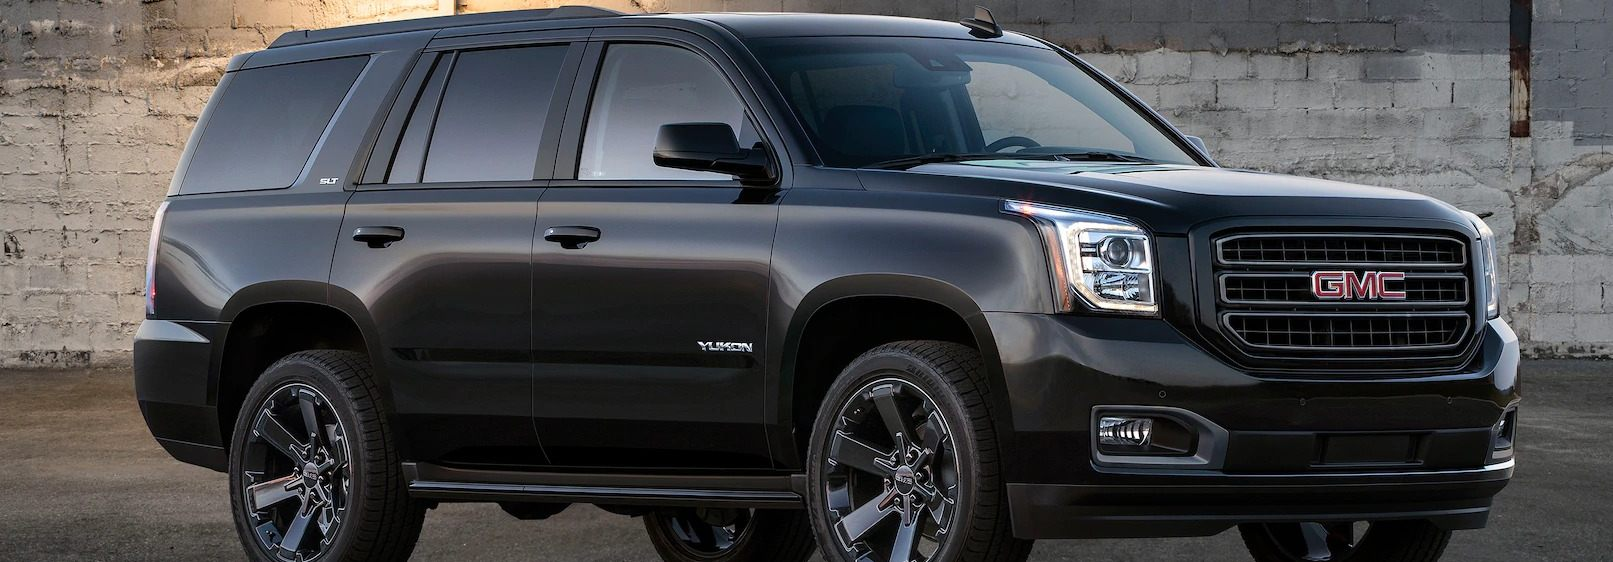 Maximum Towing Capacity For The 2019 Gmc Acadia | 2019 ...